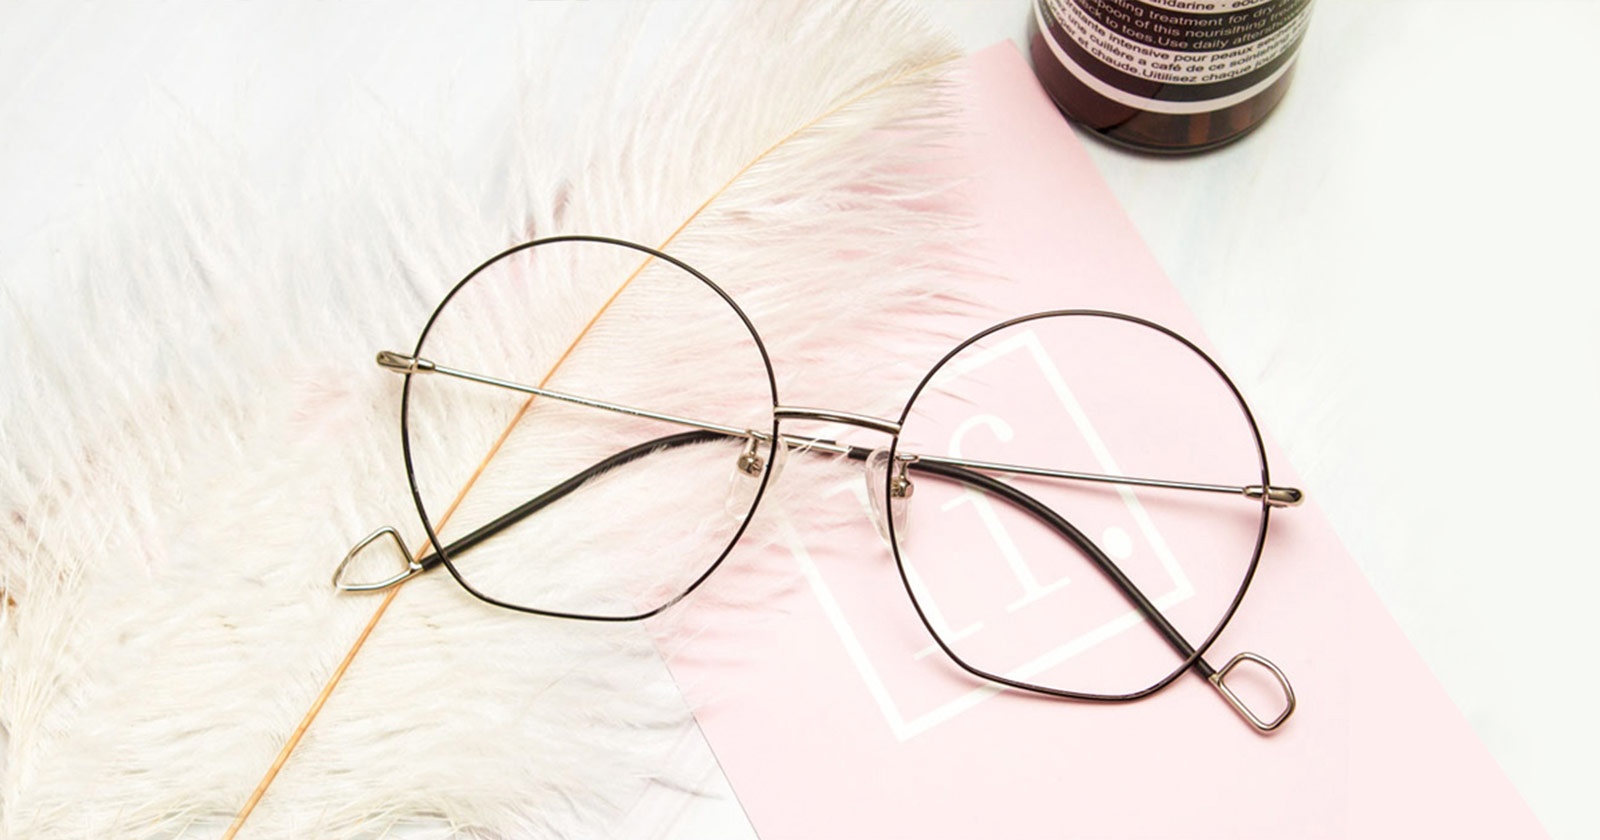 The Most Popular Glasses Colors In The USA?